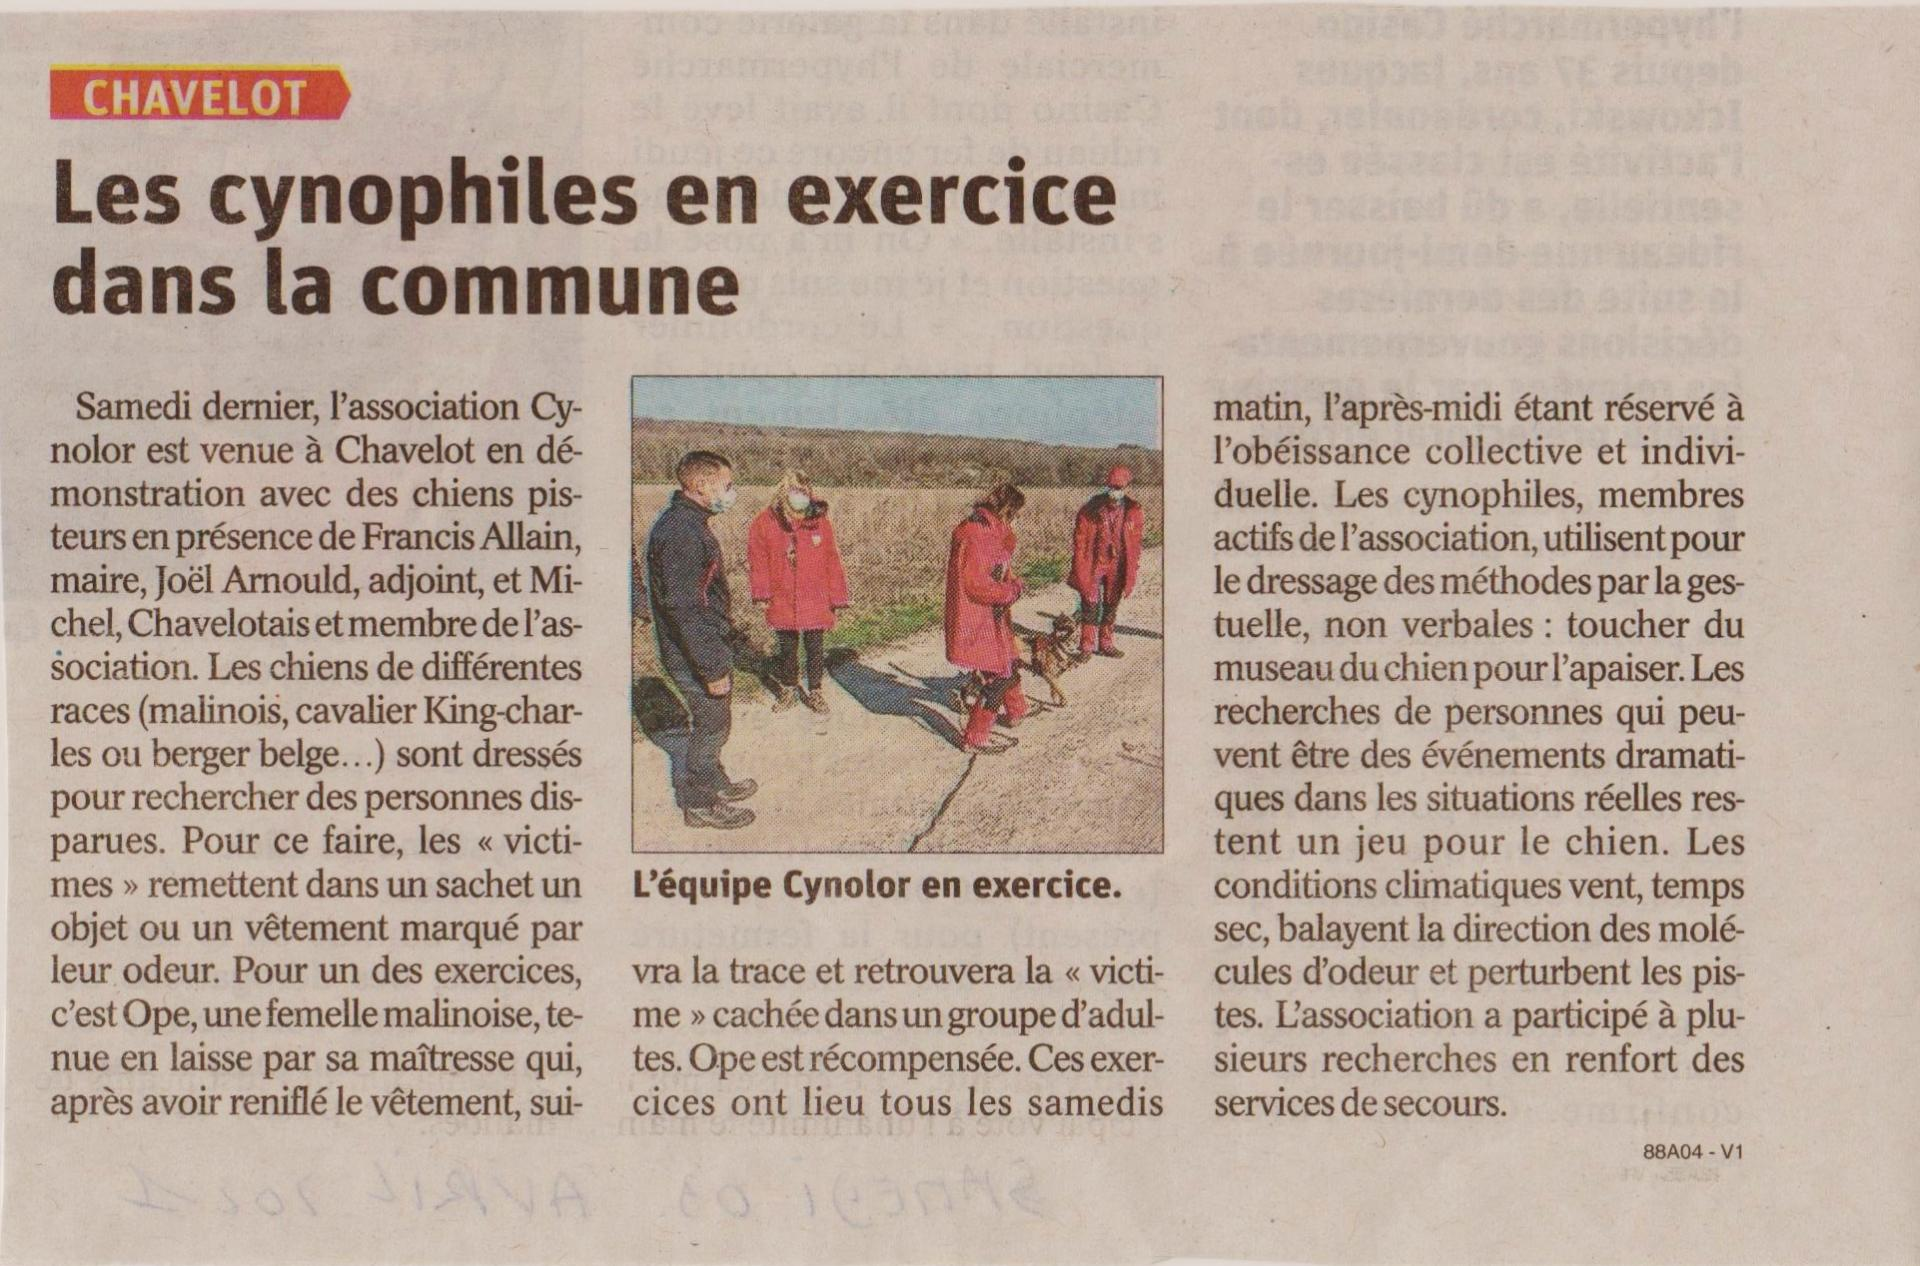 Article chavelot 03 avril 2021 002